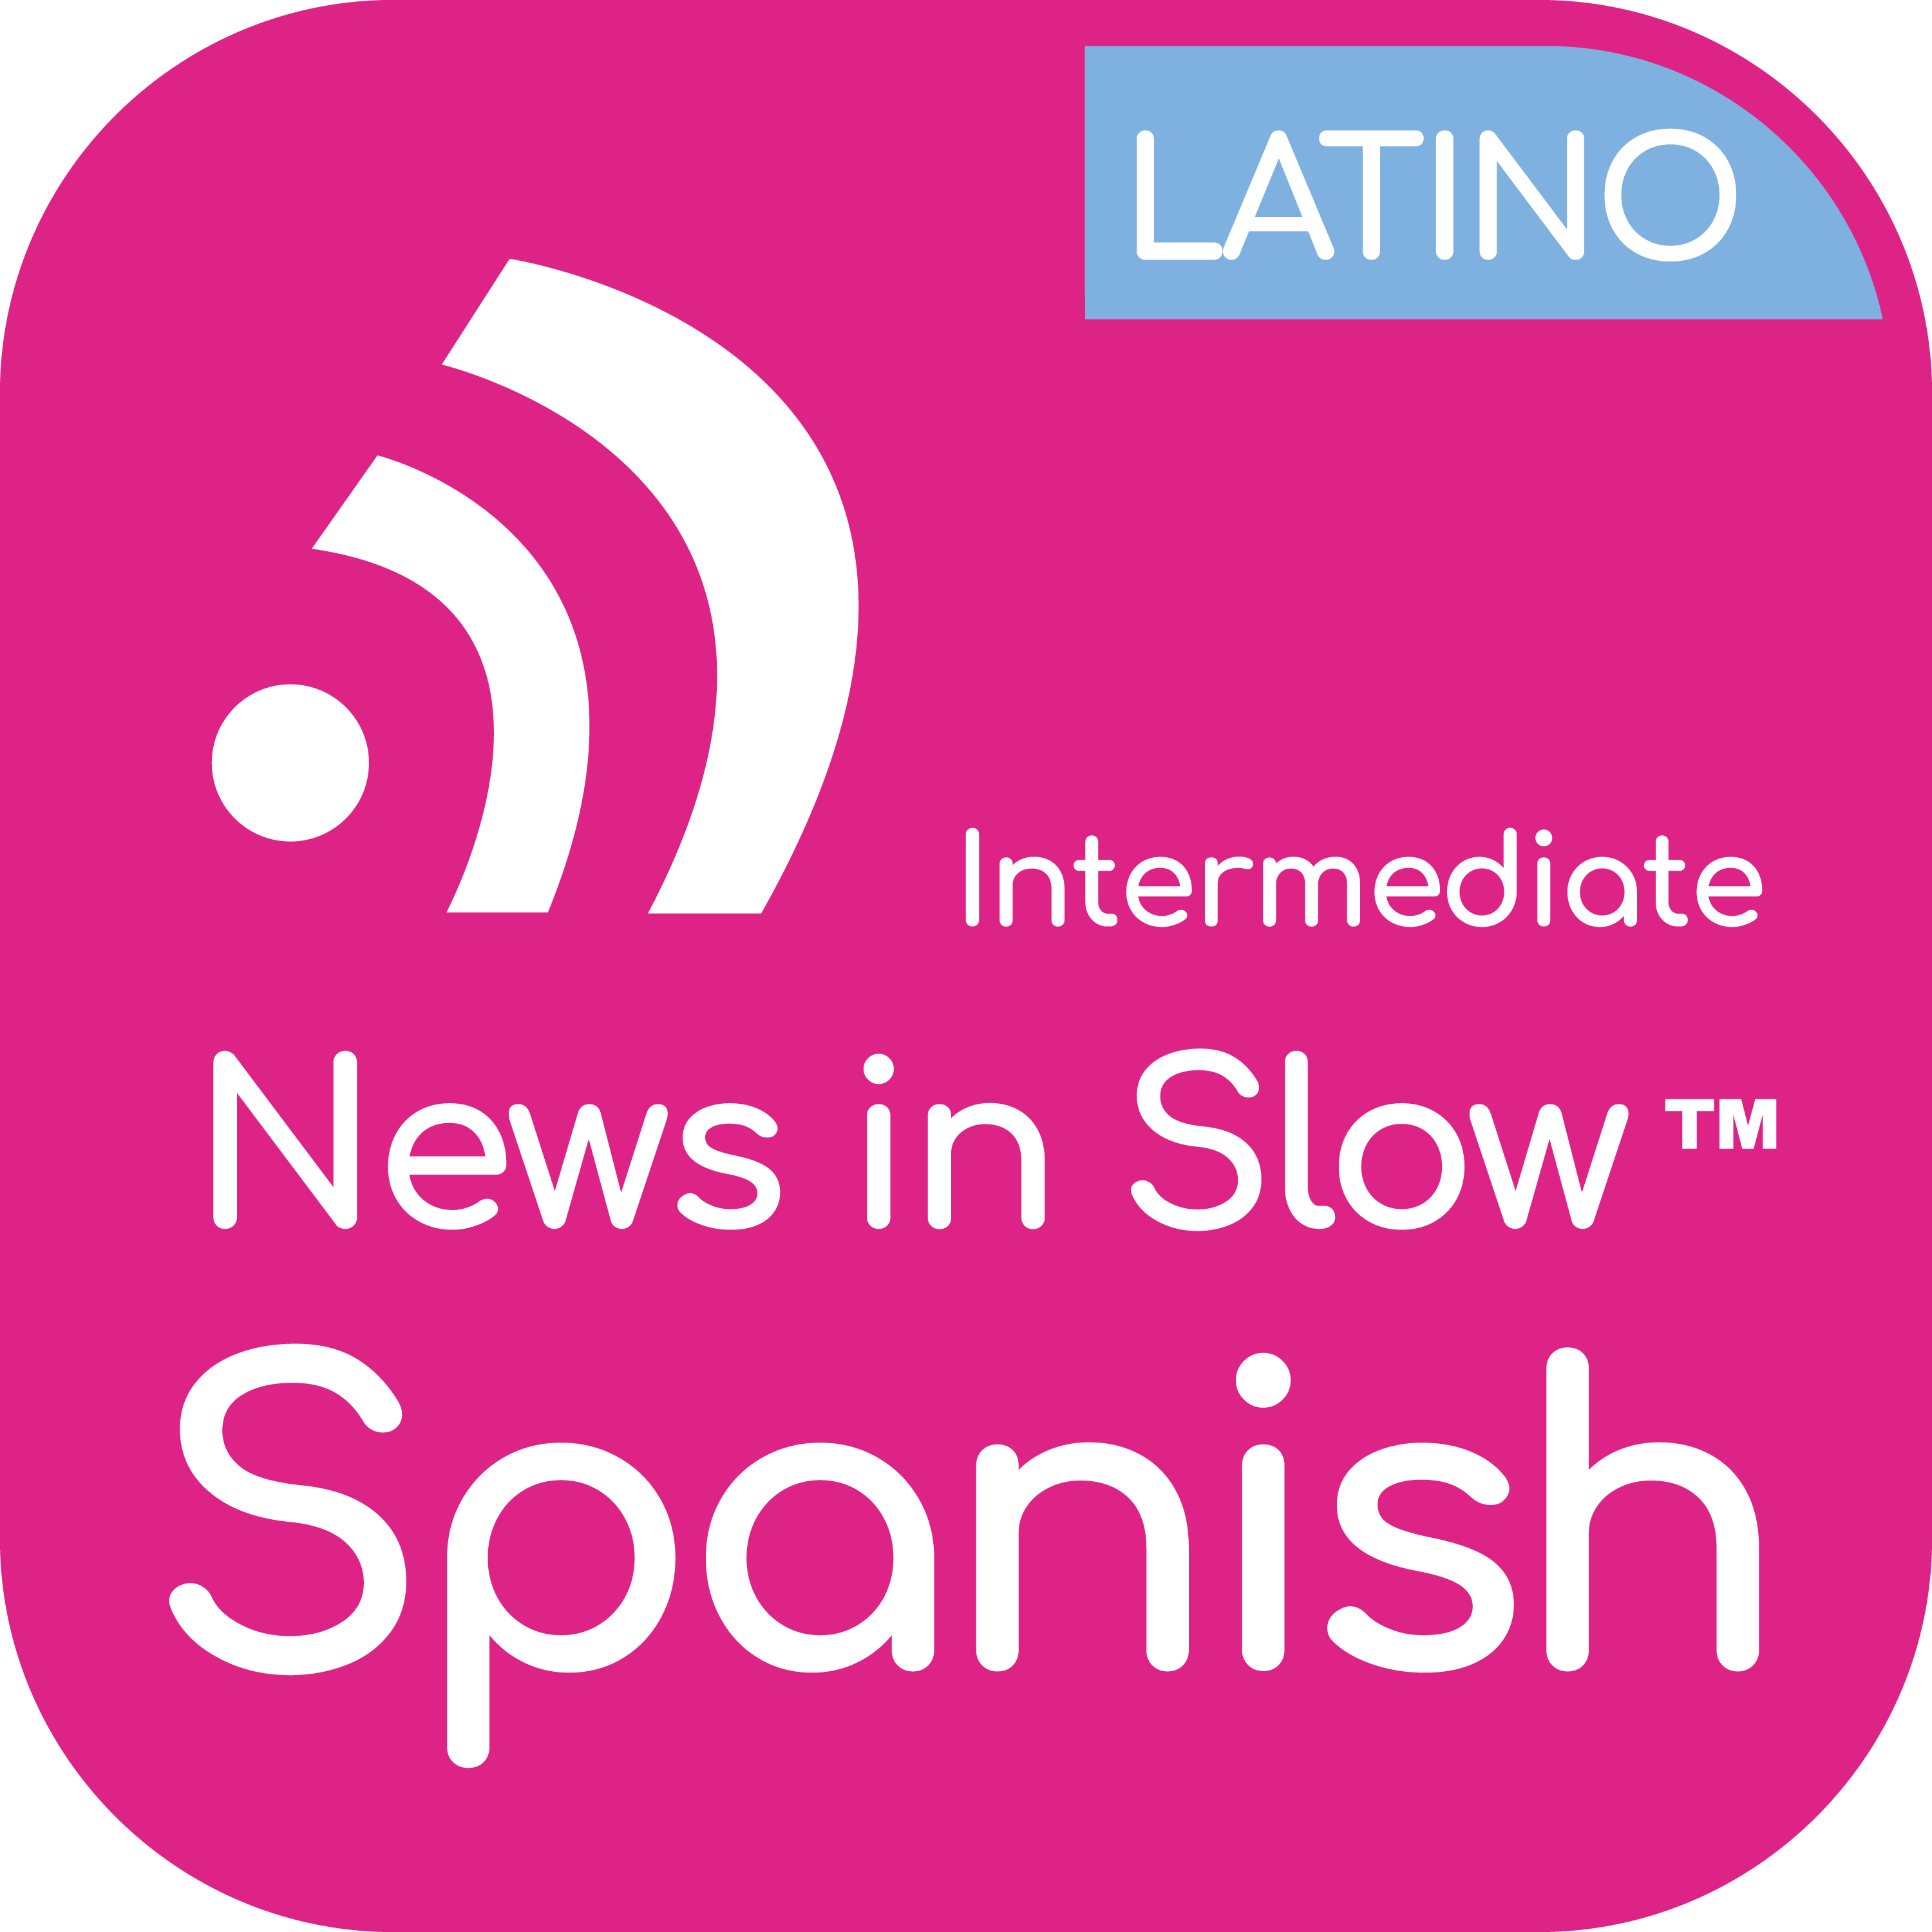 News In Slow Spanish Latino #355 - Spanish Grammar, News, and Expressions